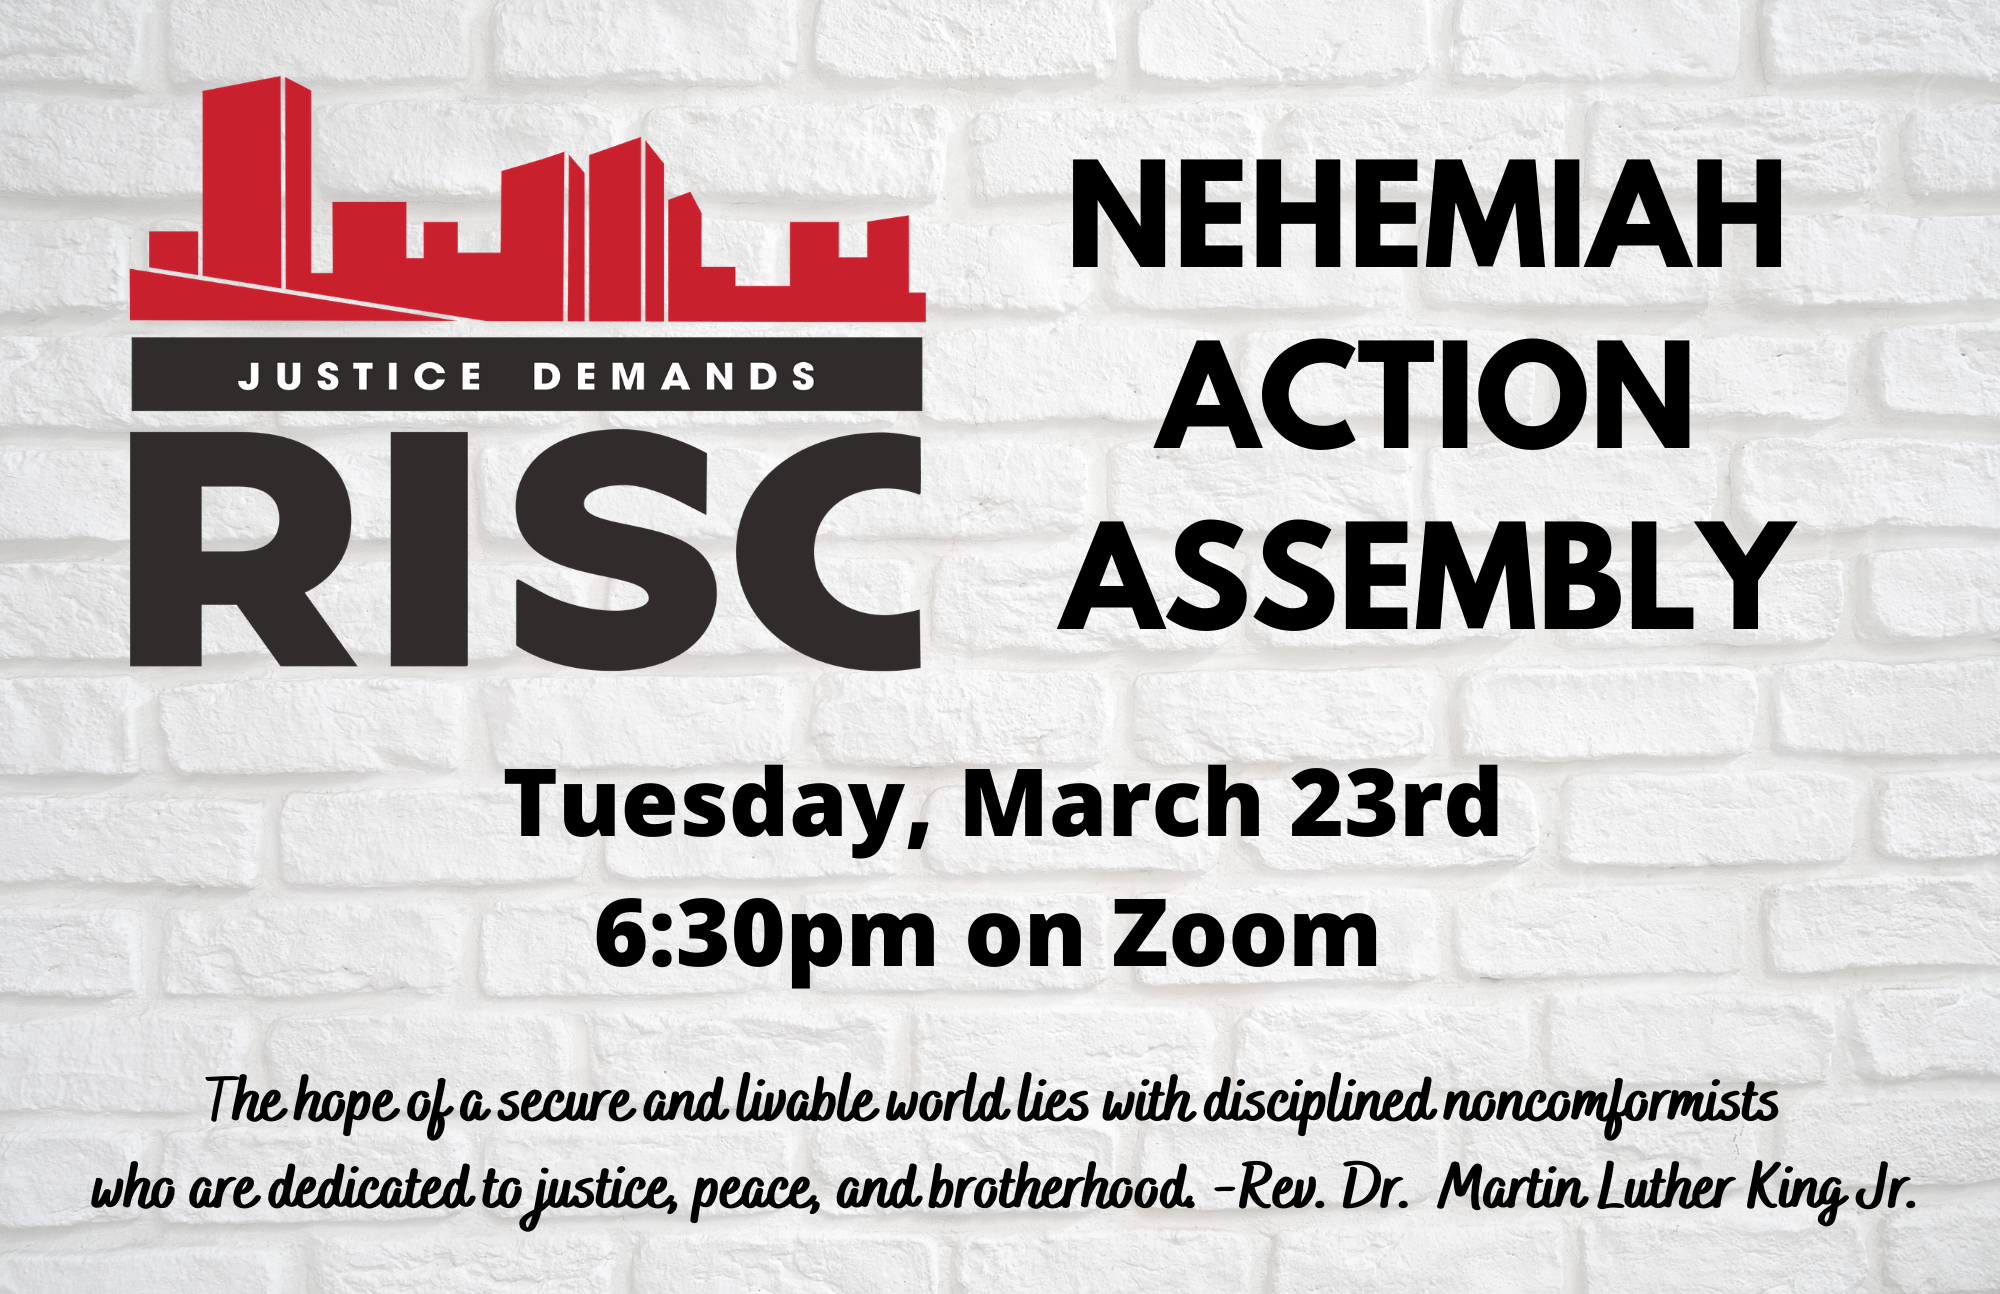 Banner Image for RISC: Nehemiah Action Assembly